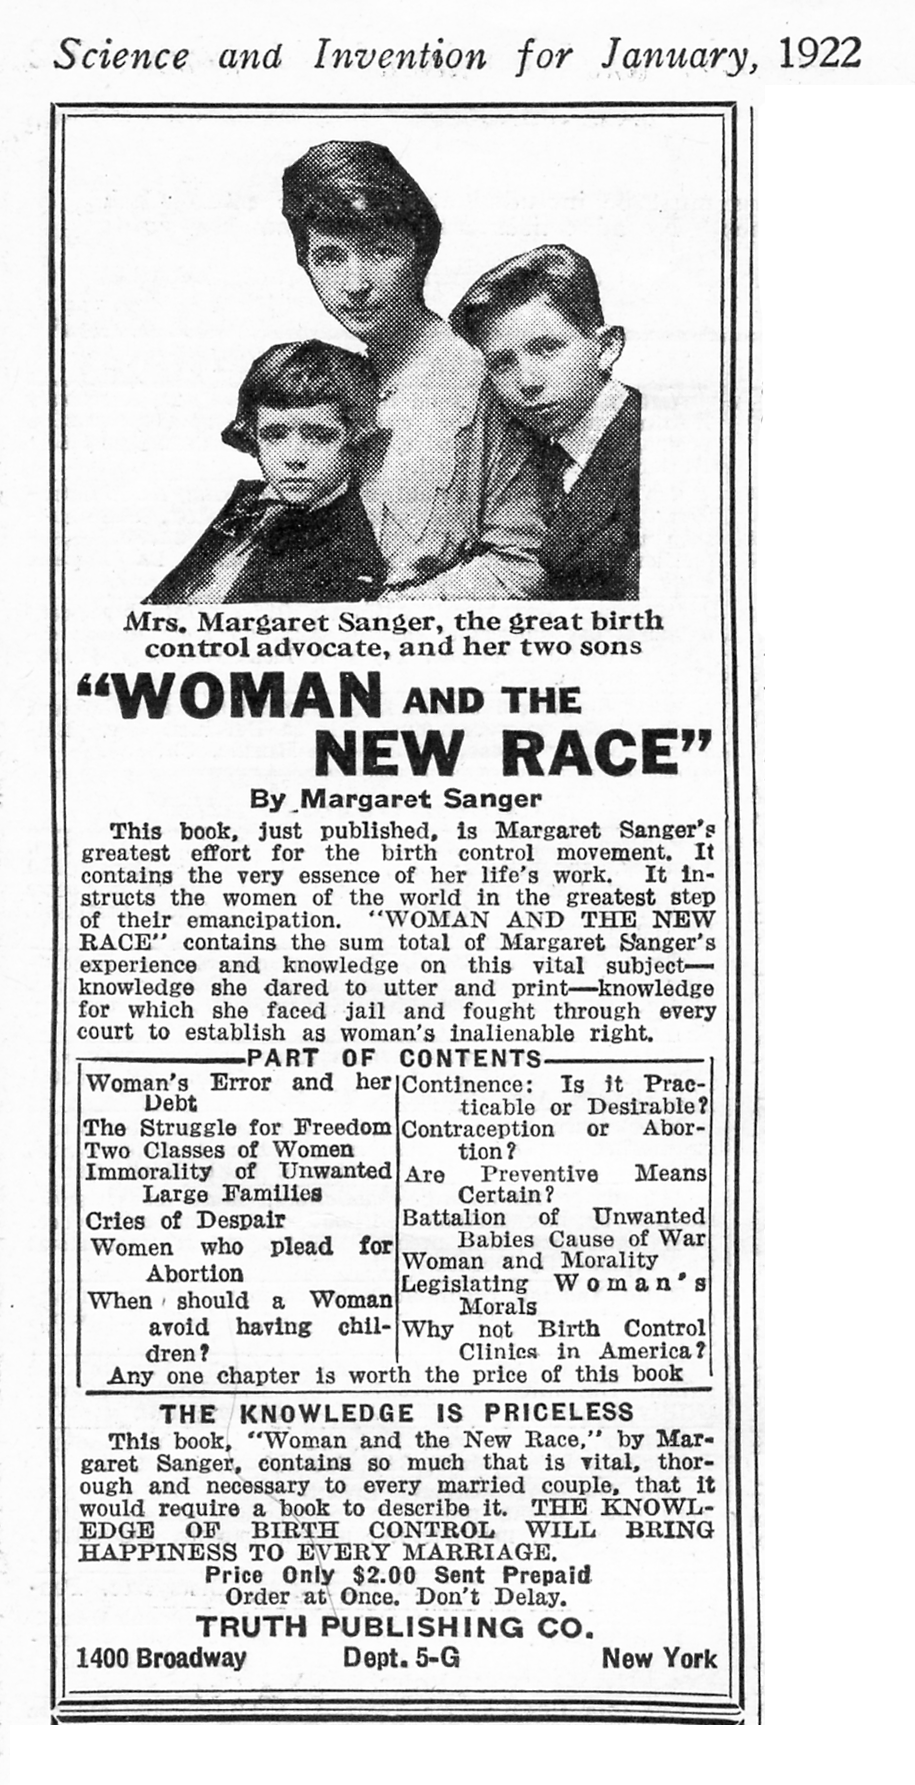 http://upload.wikimedia.org/wikipedia/commons/e/eb/Woman_And_The_New_Race.png